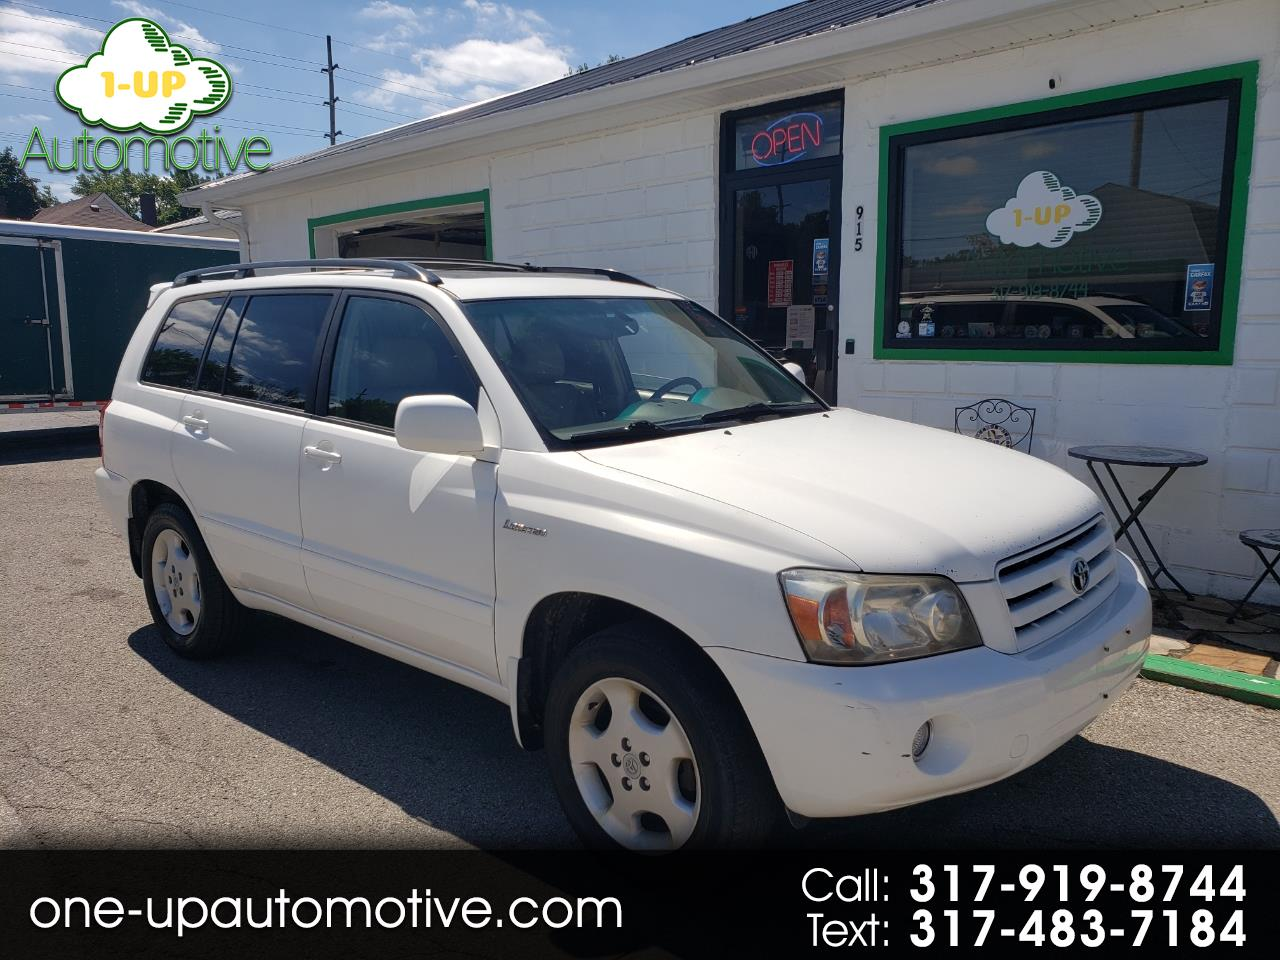 2004 Toyota Highlander Limited AWD 4dr SUV w/3rd Row